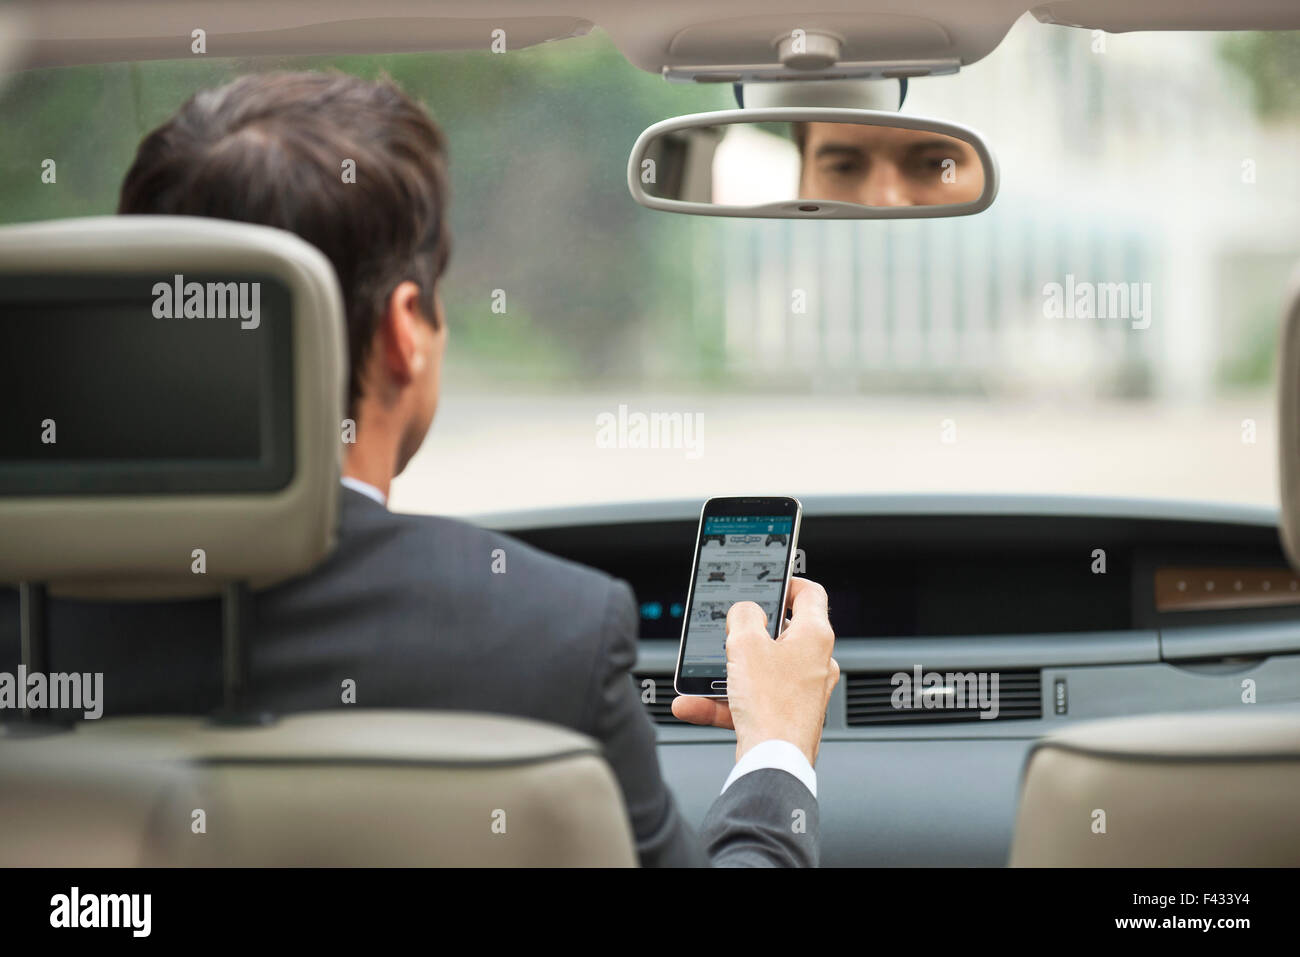 Using cell phone while driving car - Stock Image